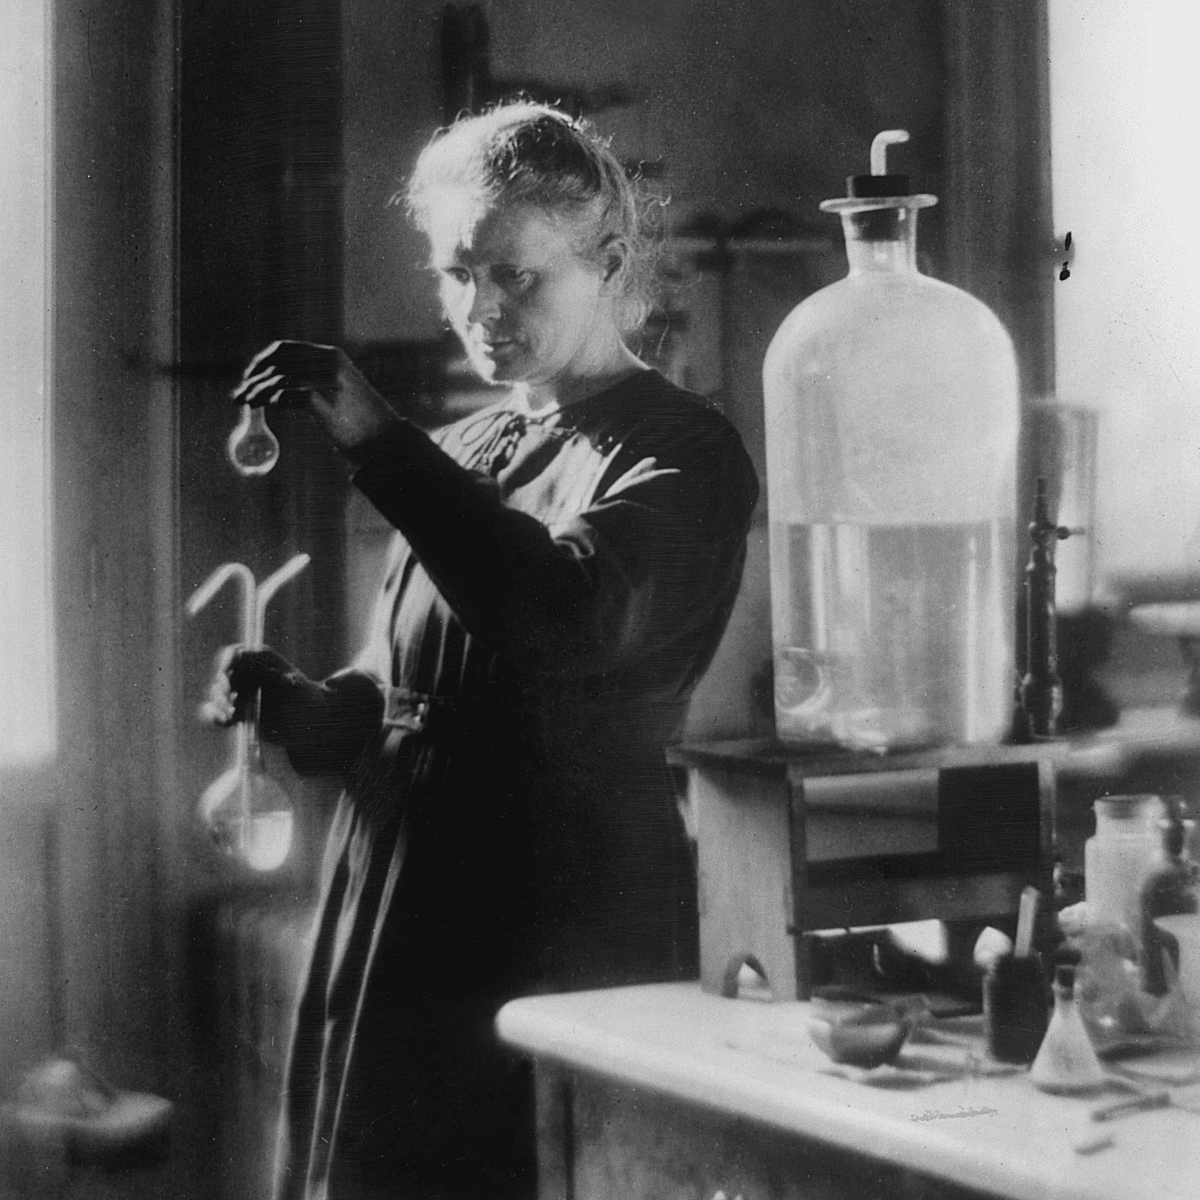 Marie Curie in Laboratory, 1910